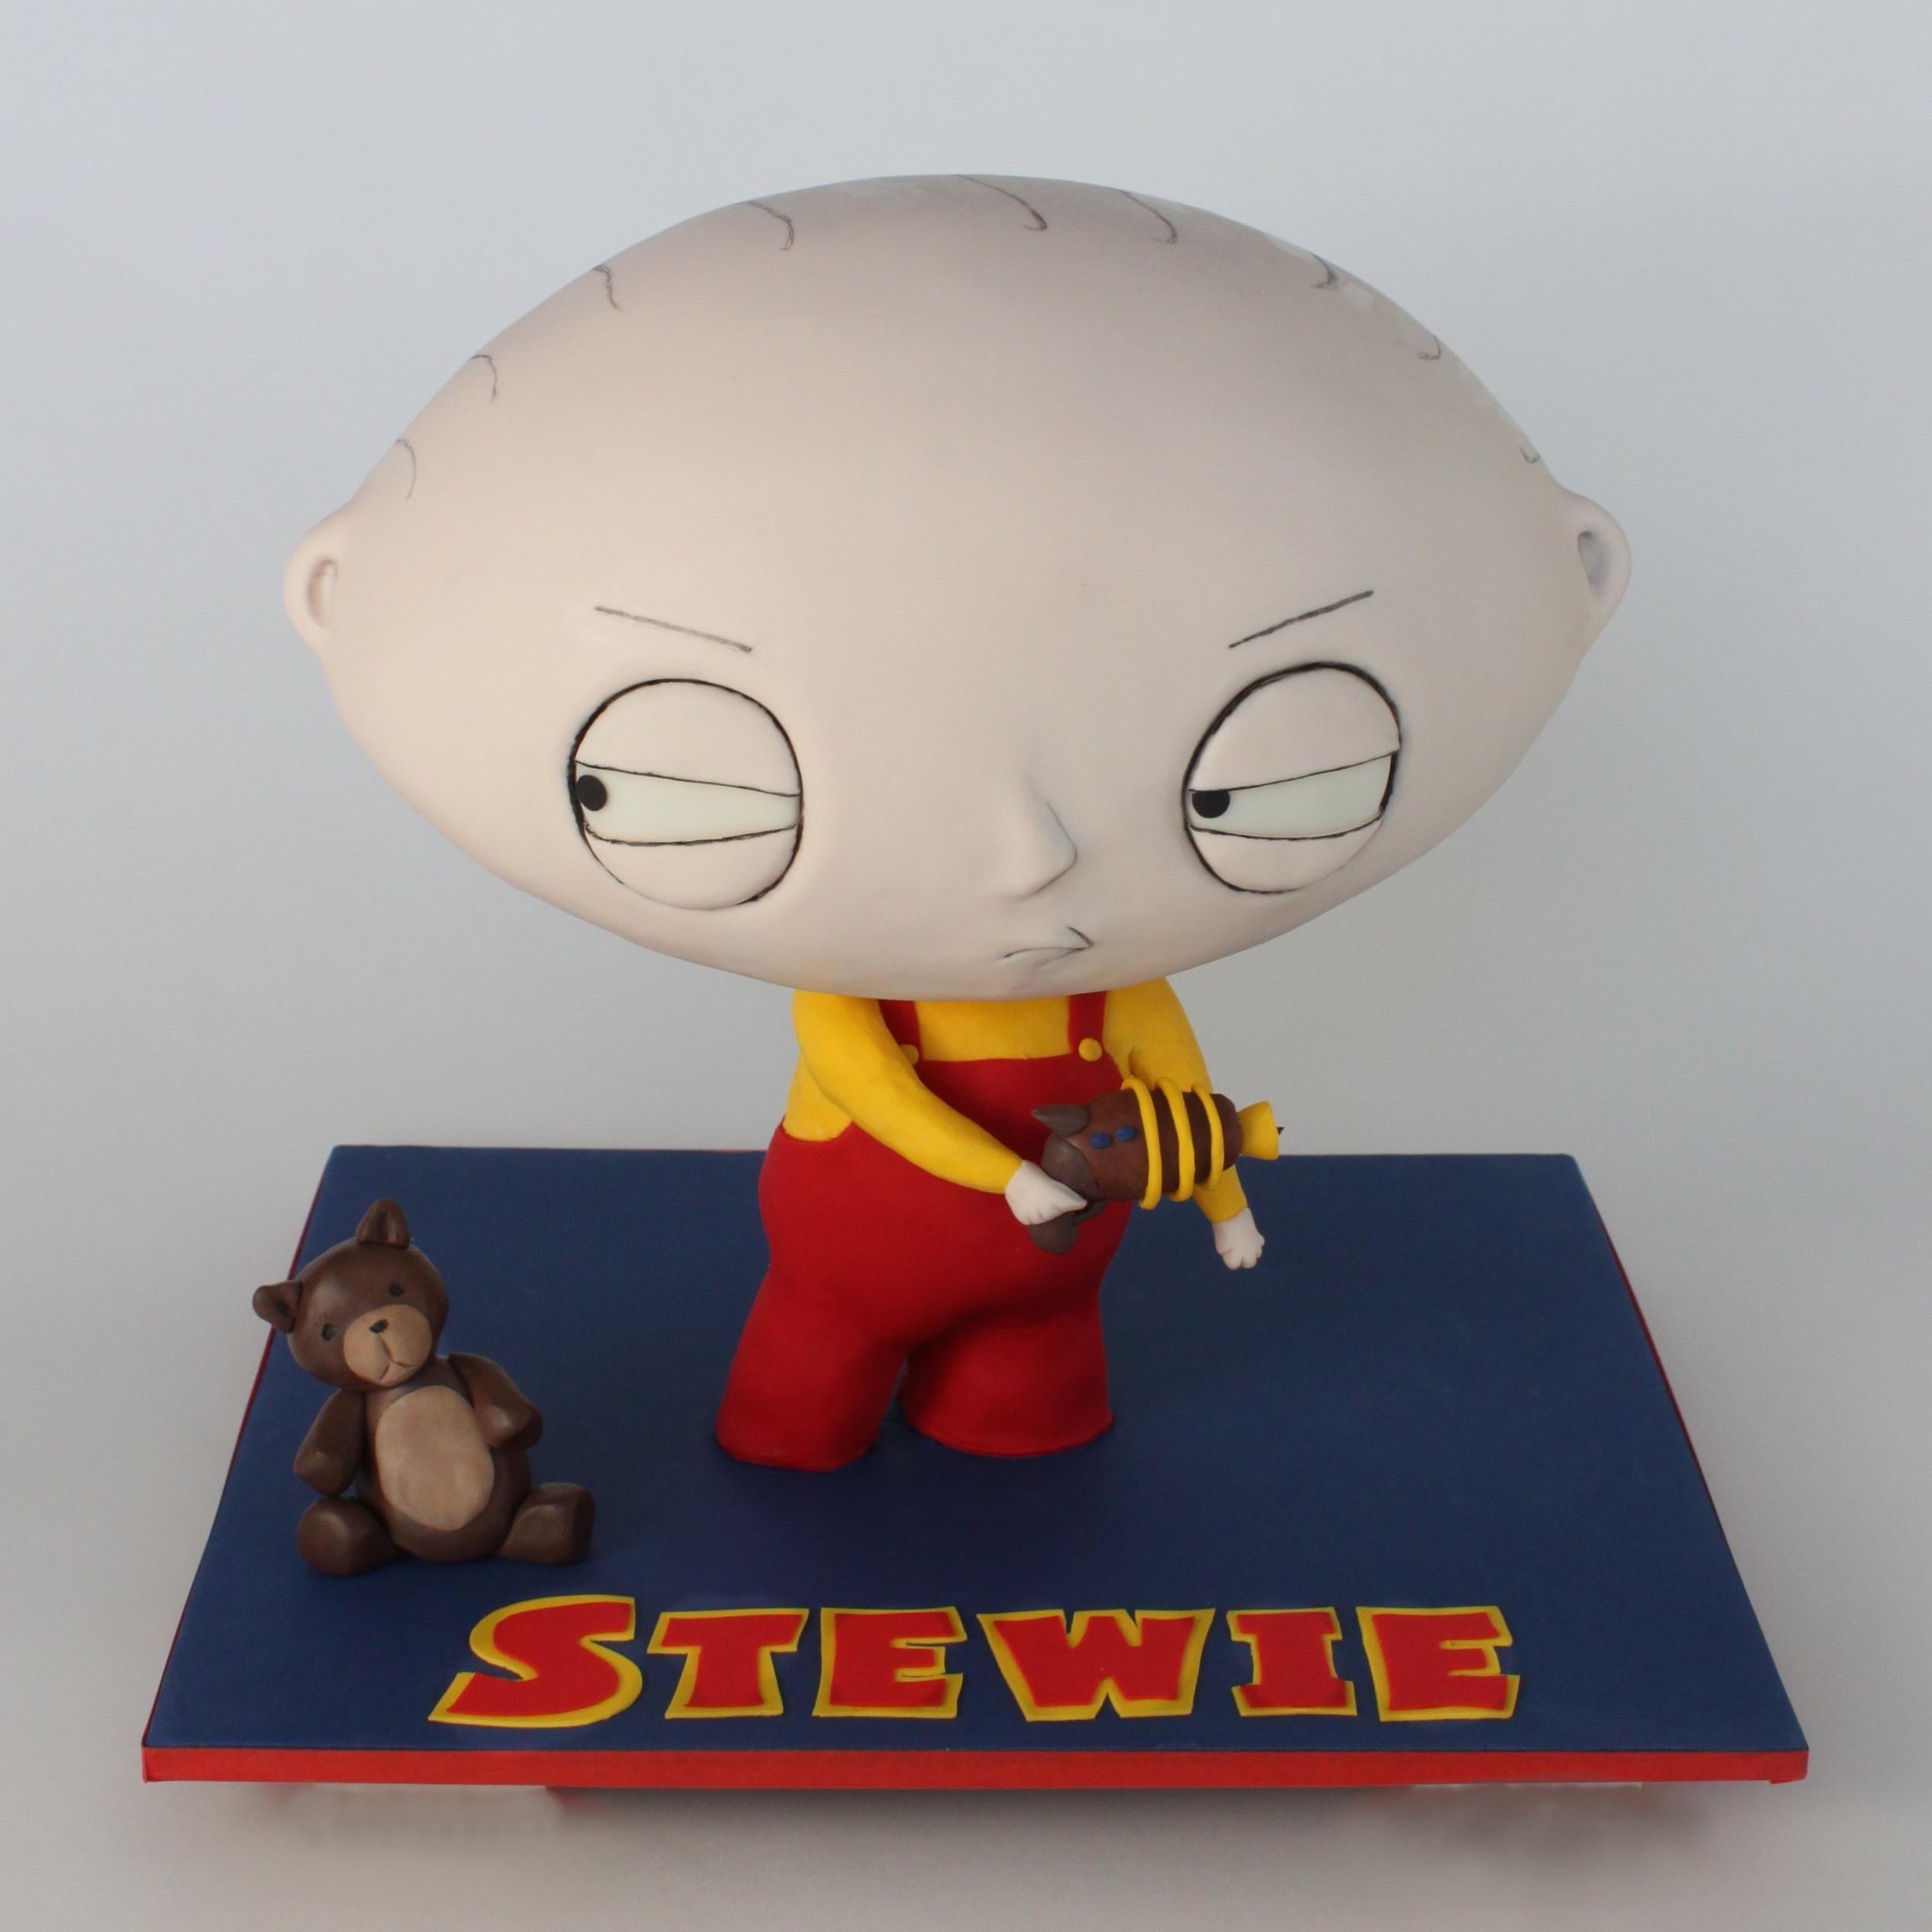 Village Cakecraft Stewie family guy 0691 nw.jpg